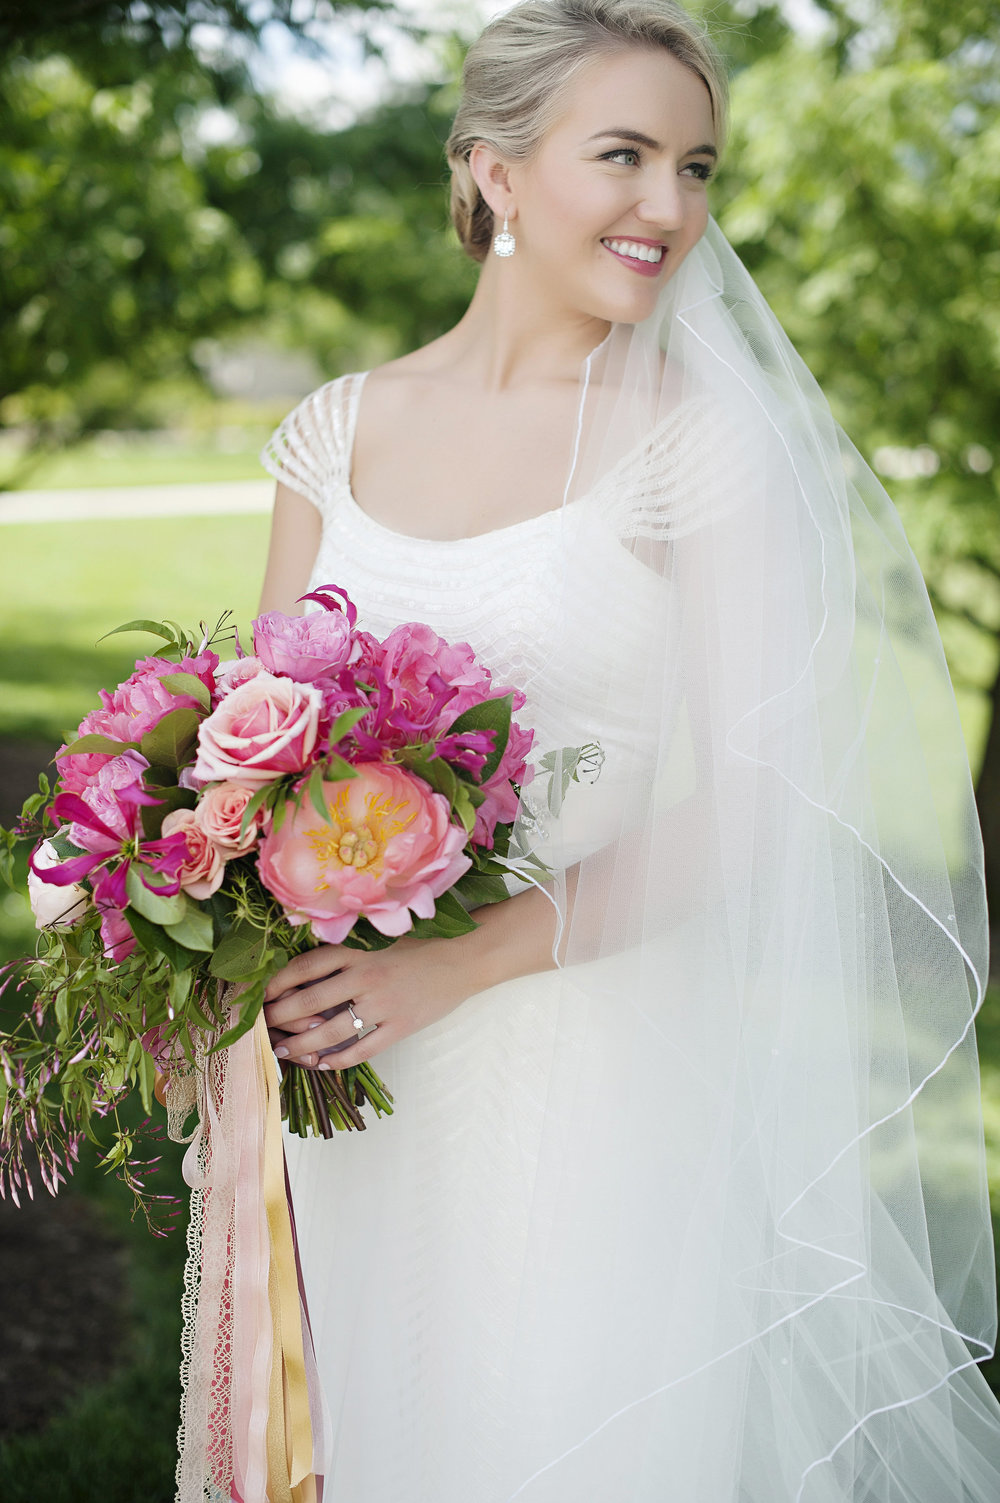 Bride and Bouquet at Hilton Netherland Plaza